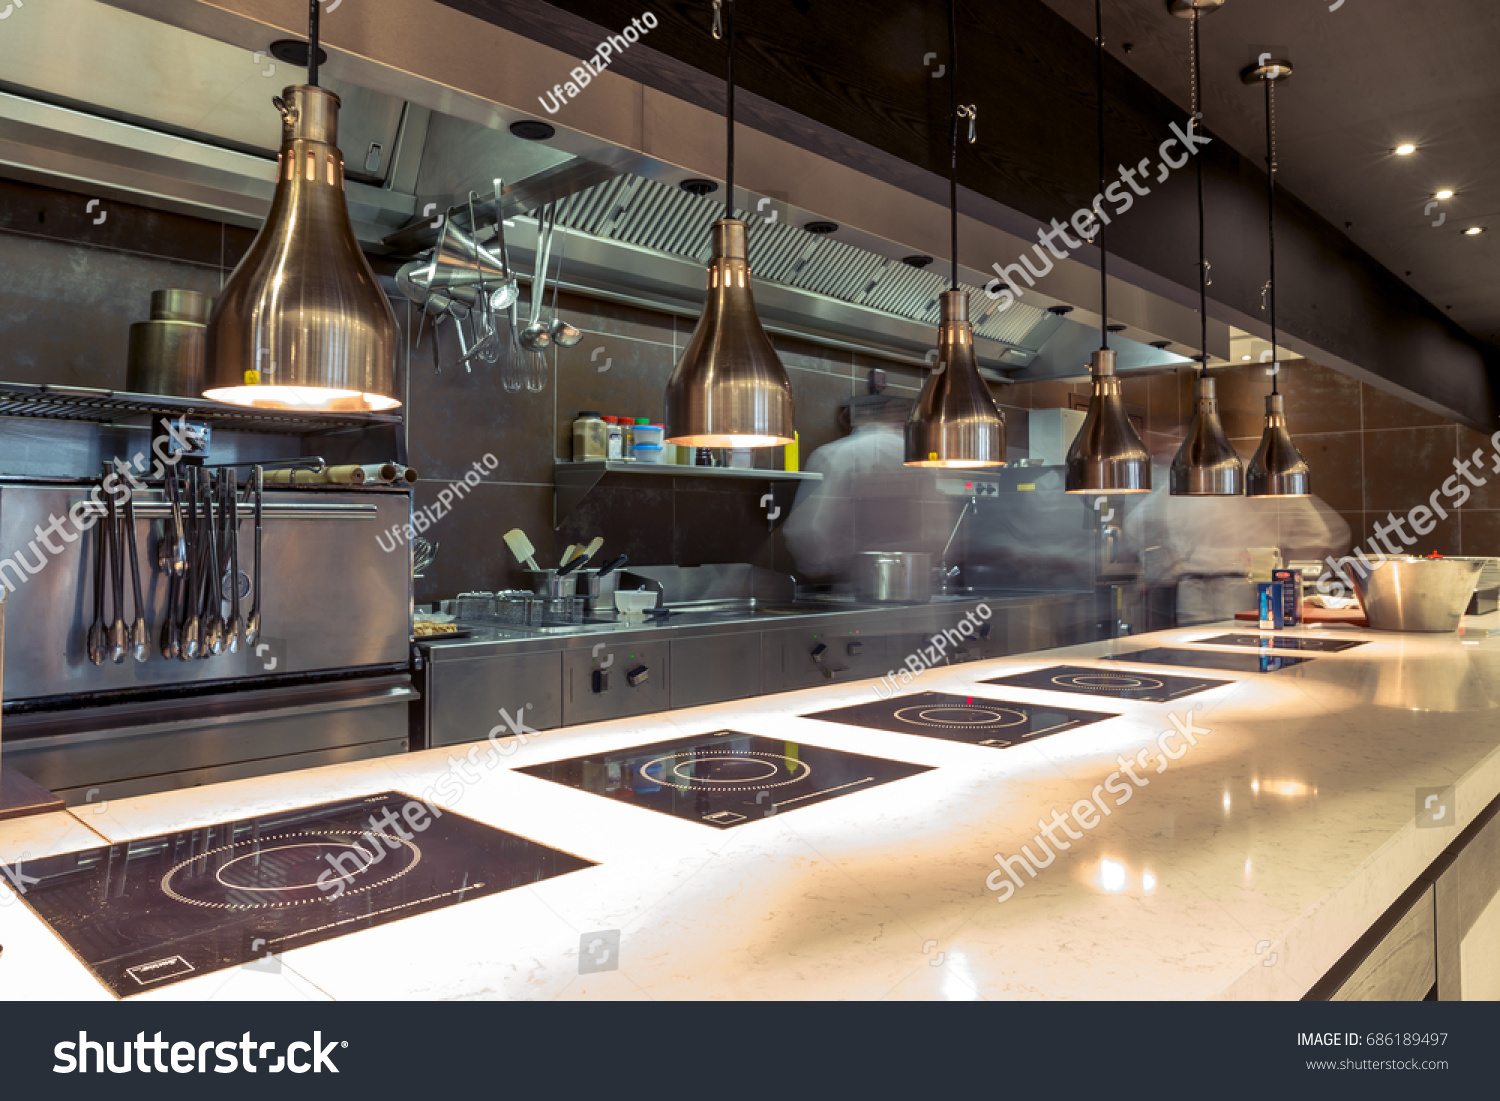 Restaurant kitchen interior bar counter made stock photo